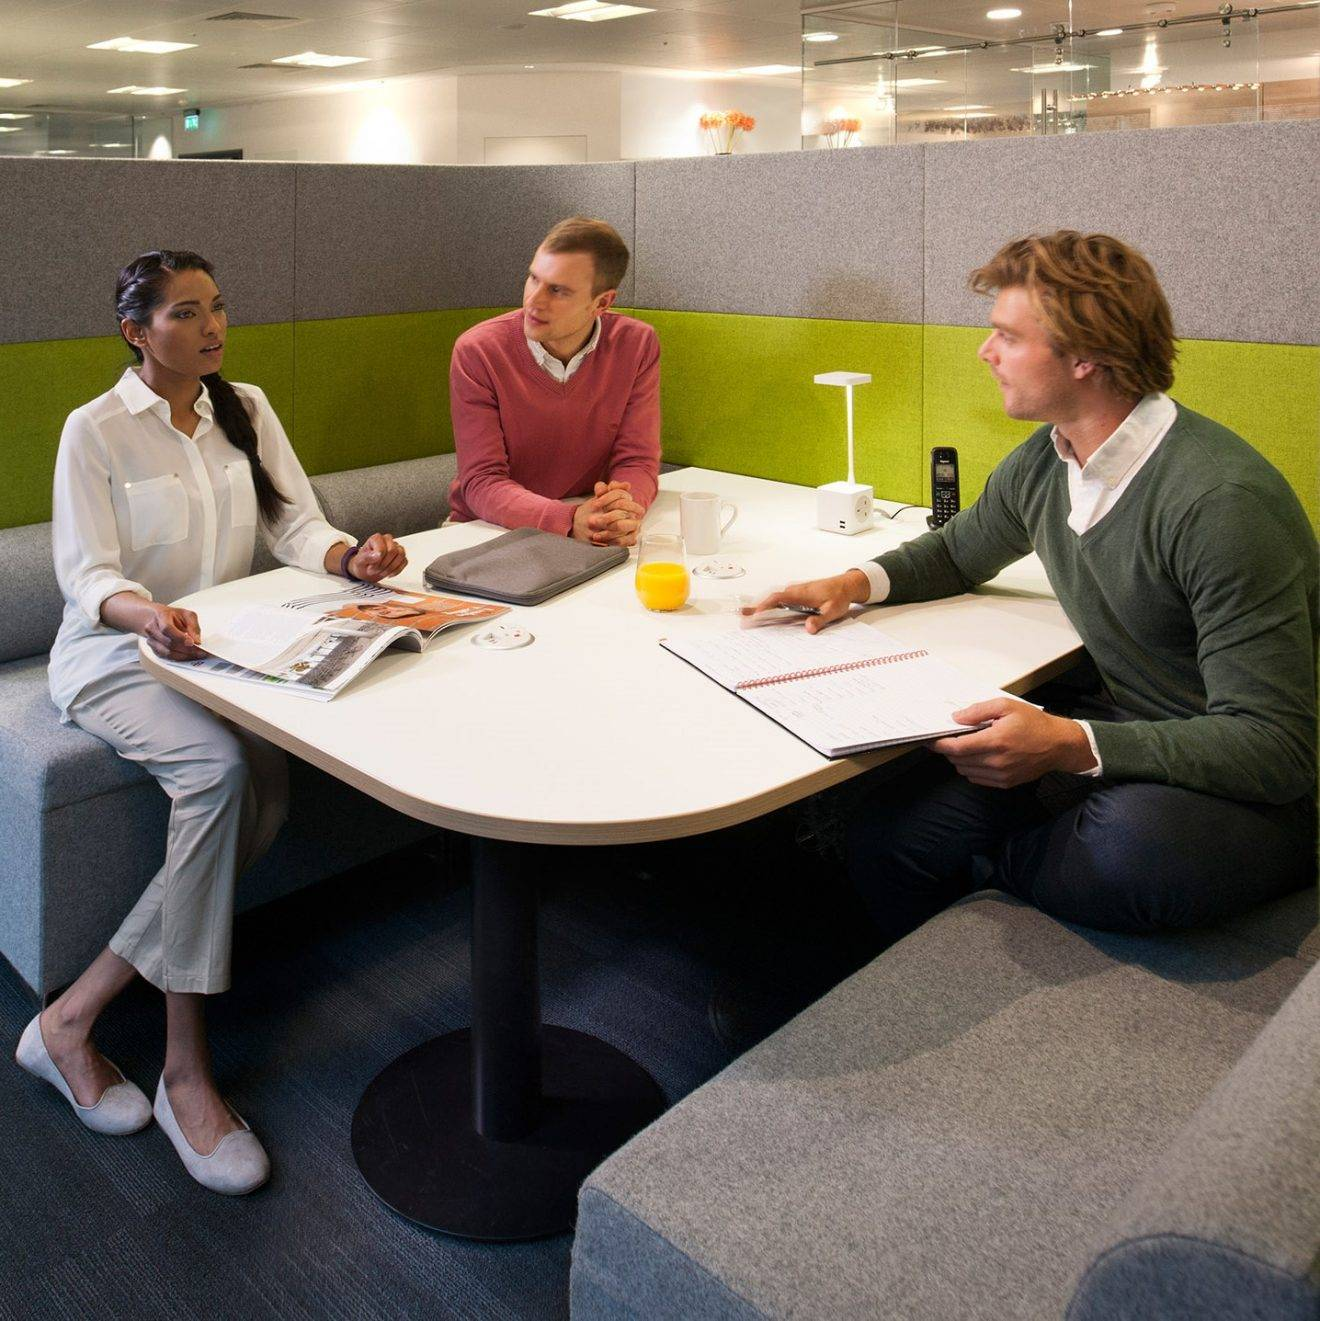 Office design should take account of the quality of interactions as well as quantity